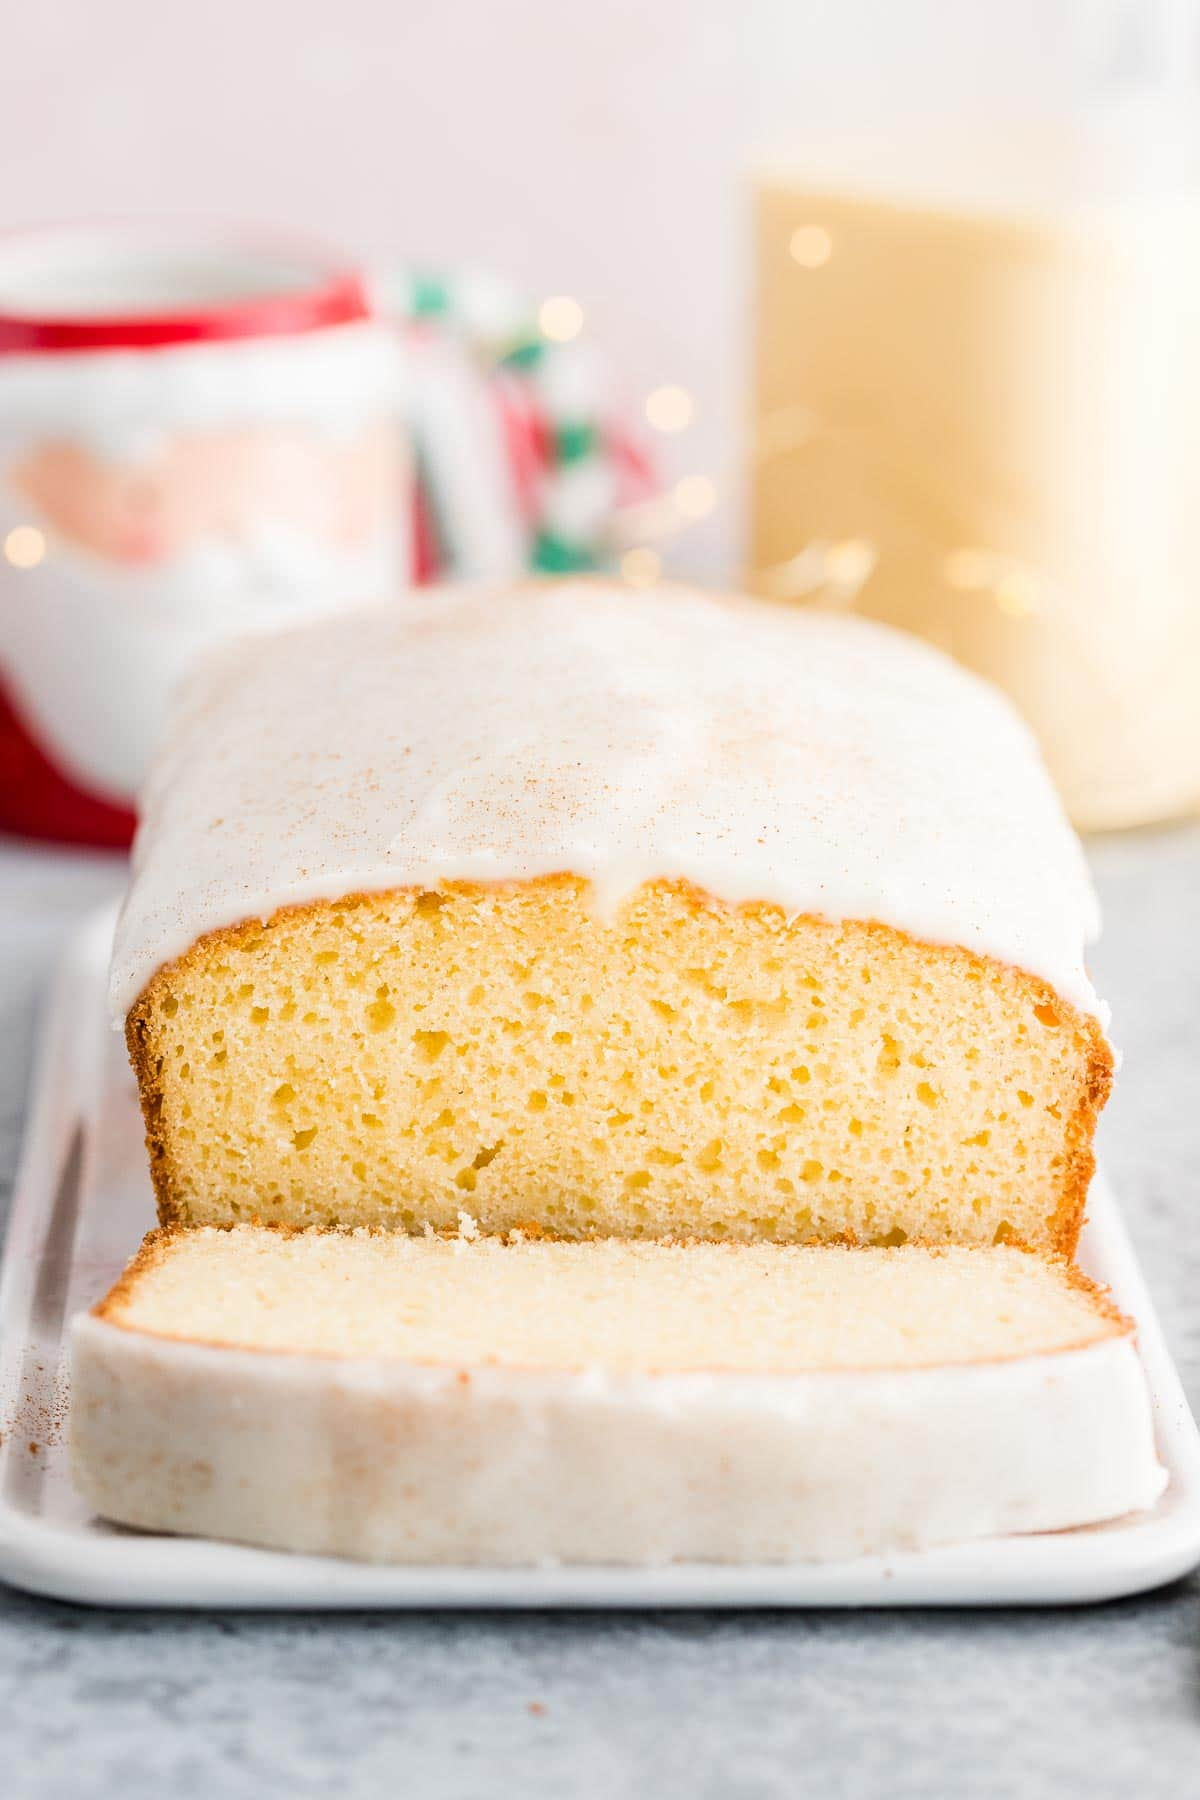 An eggnog loaf cake on a serving platter with a slice in front of it